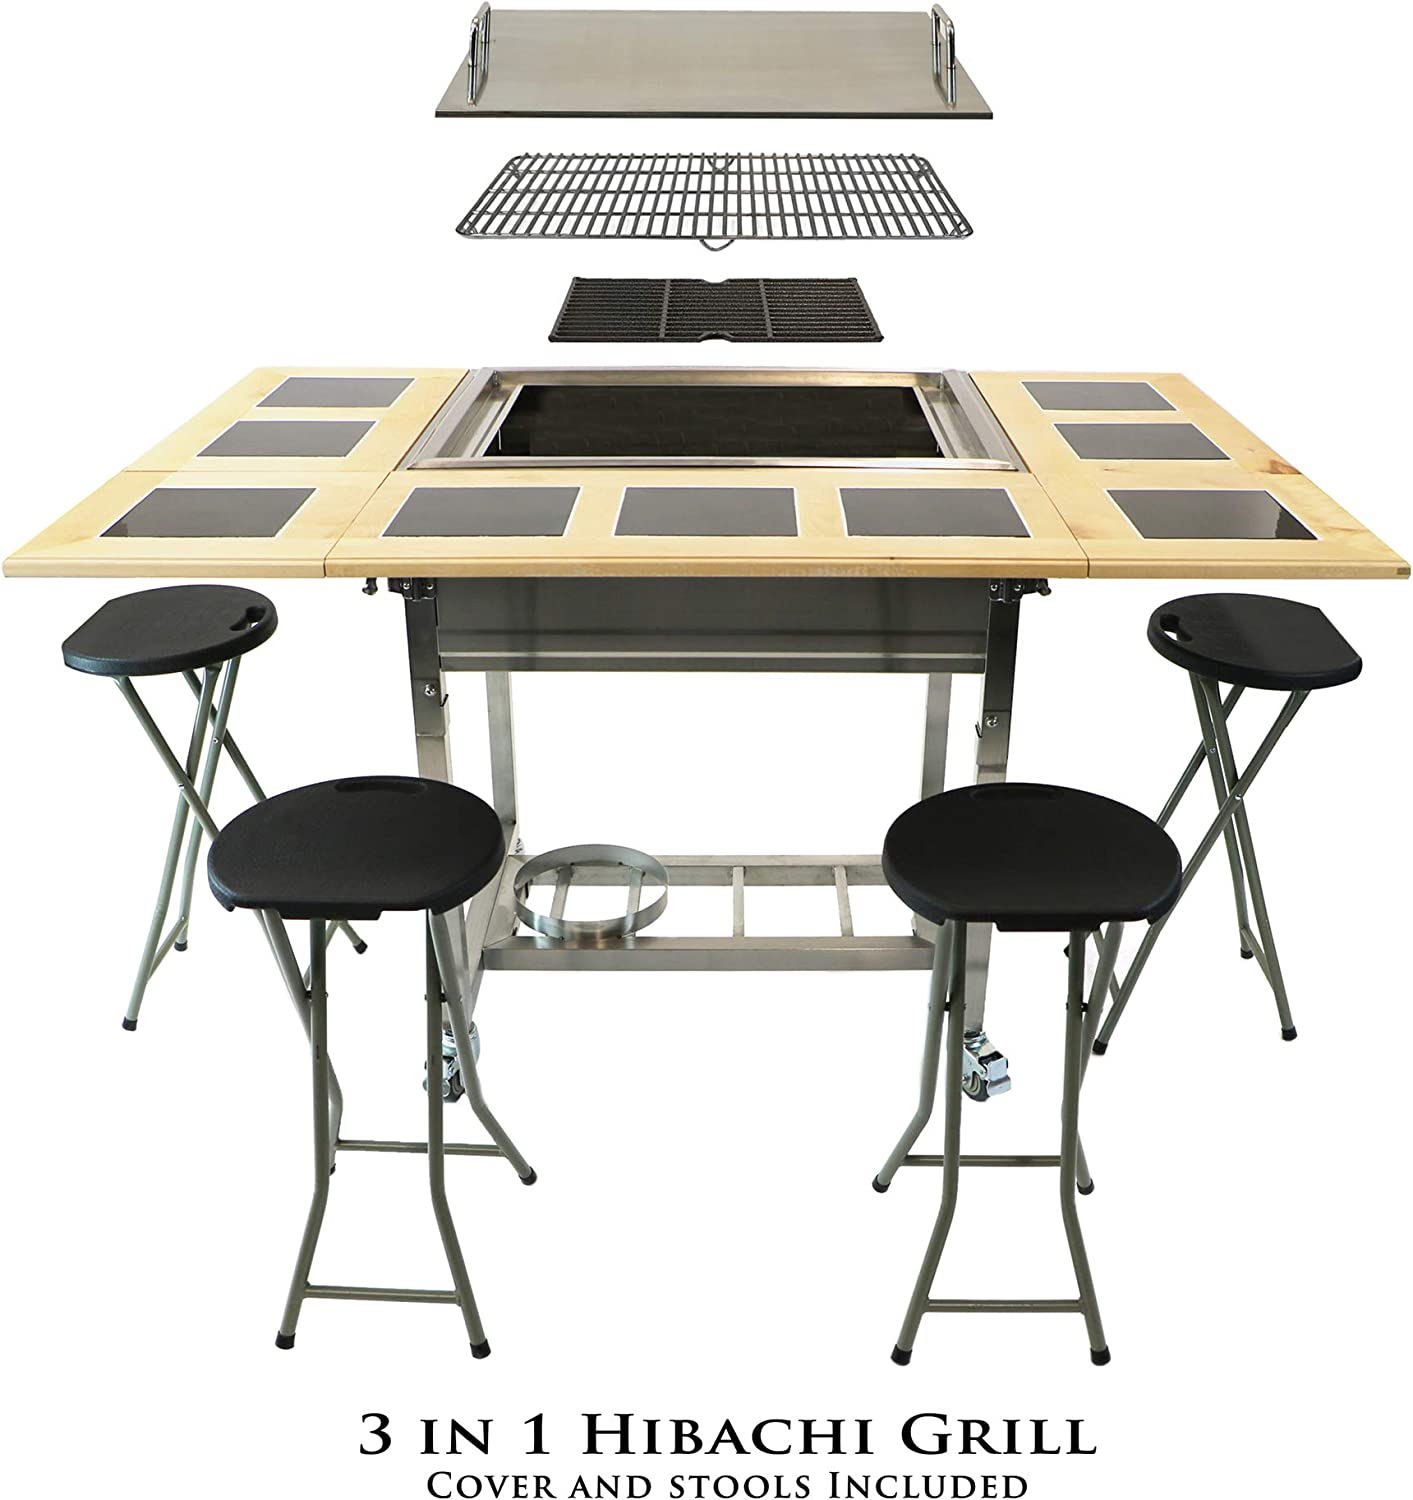 My Hibachi BBQ HBC1B Outdoor 3-in-1 Sit Around Propane w Flat Top Teppanyaki Griddle, BBQ Rack Cast Iron Portable for Tailgating Grill